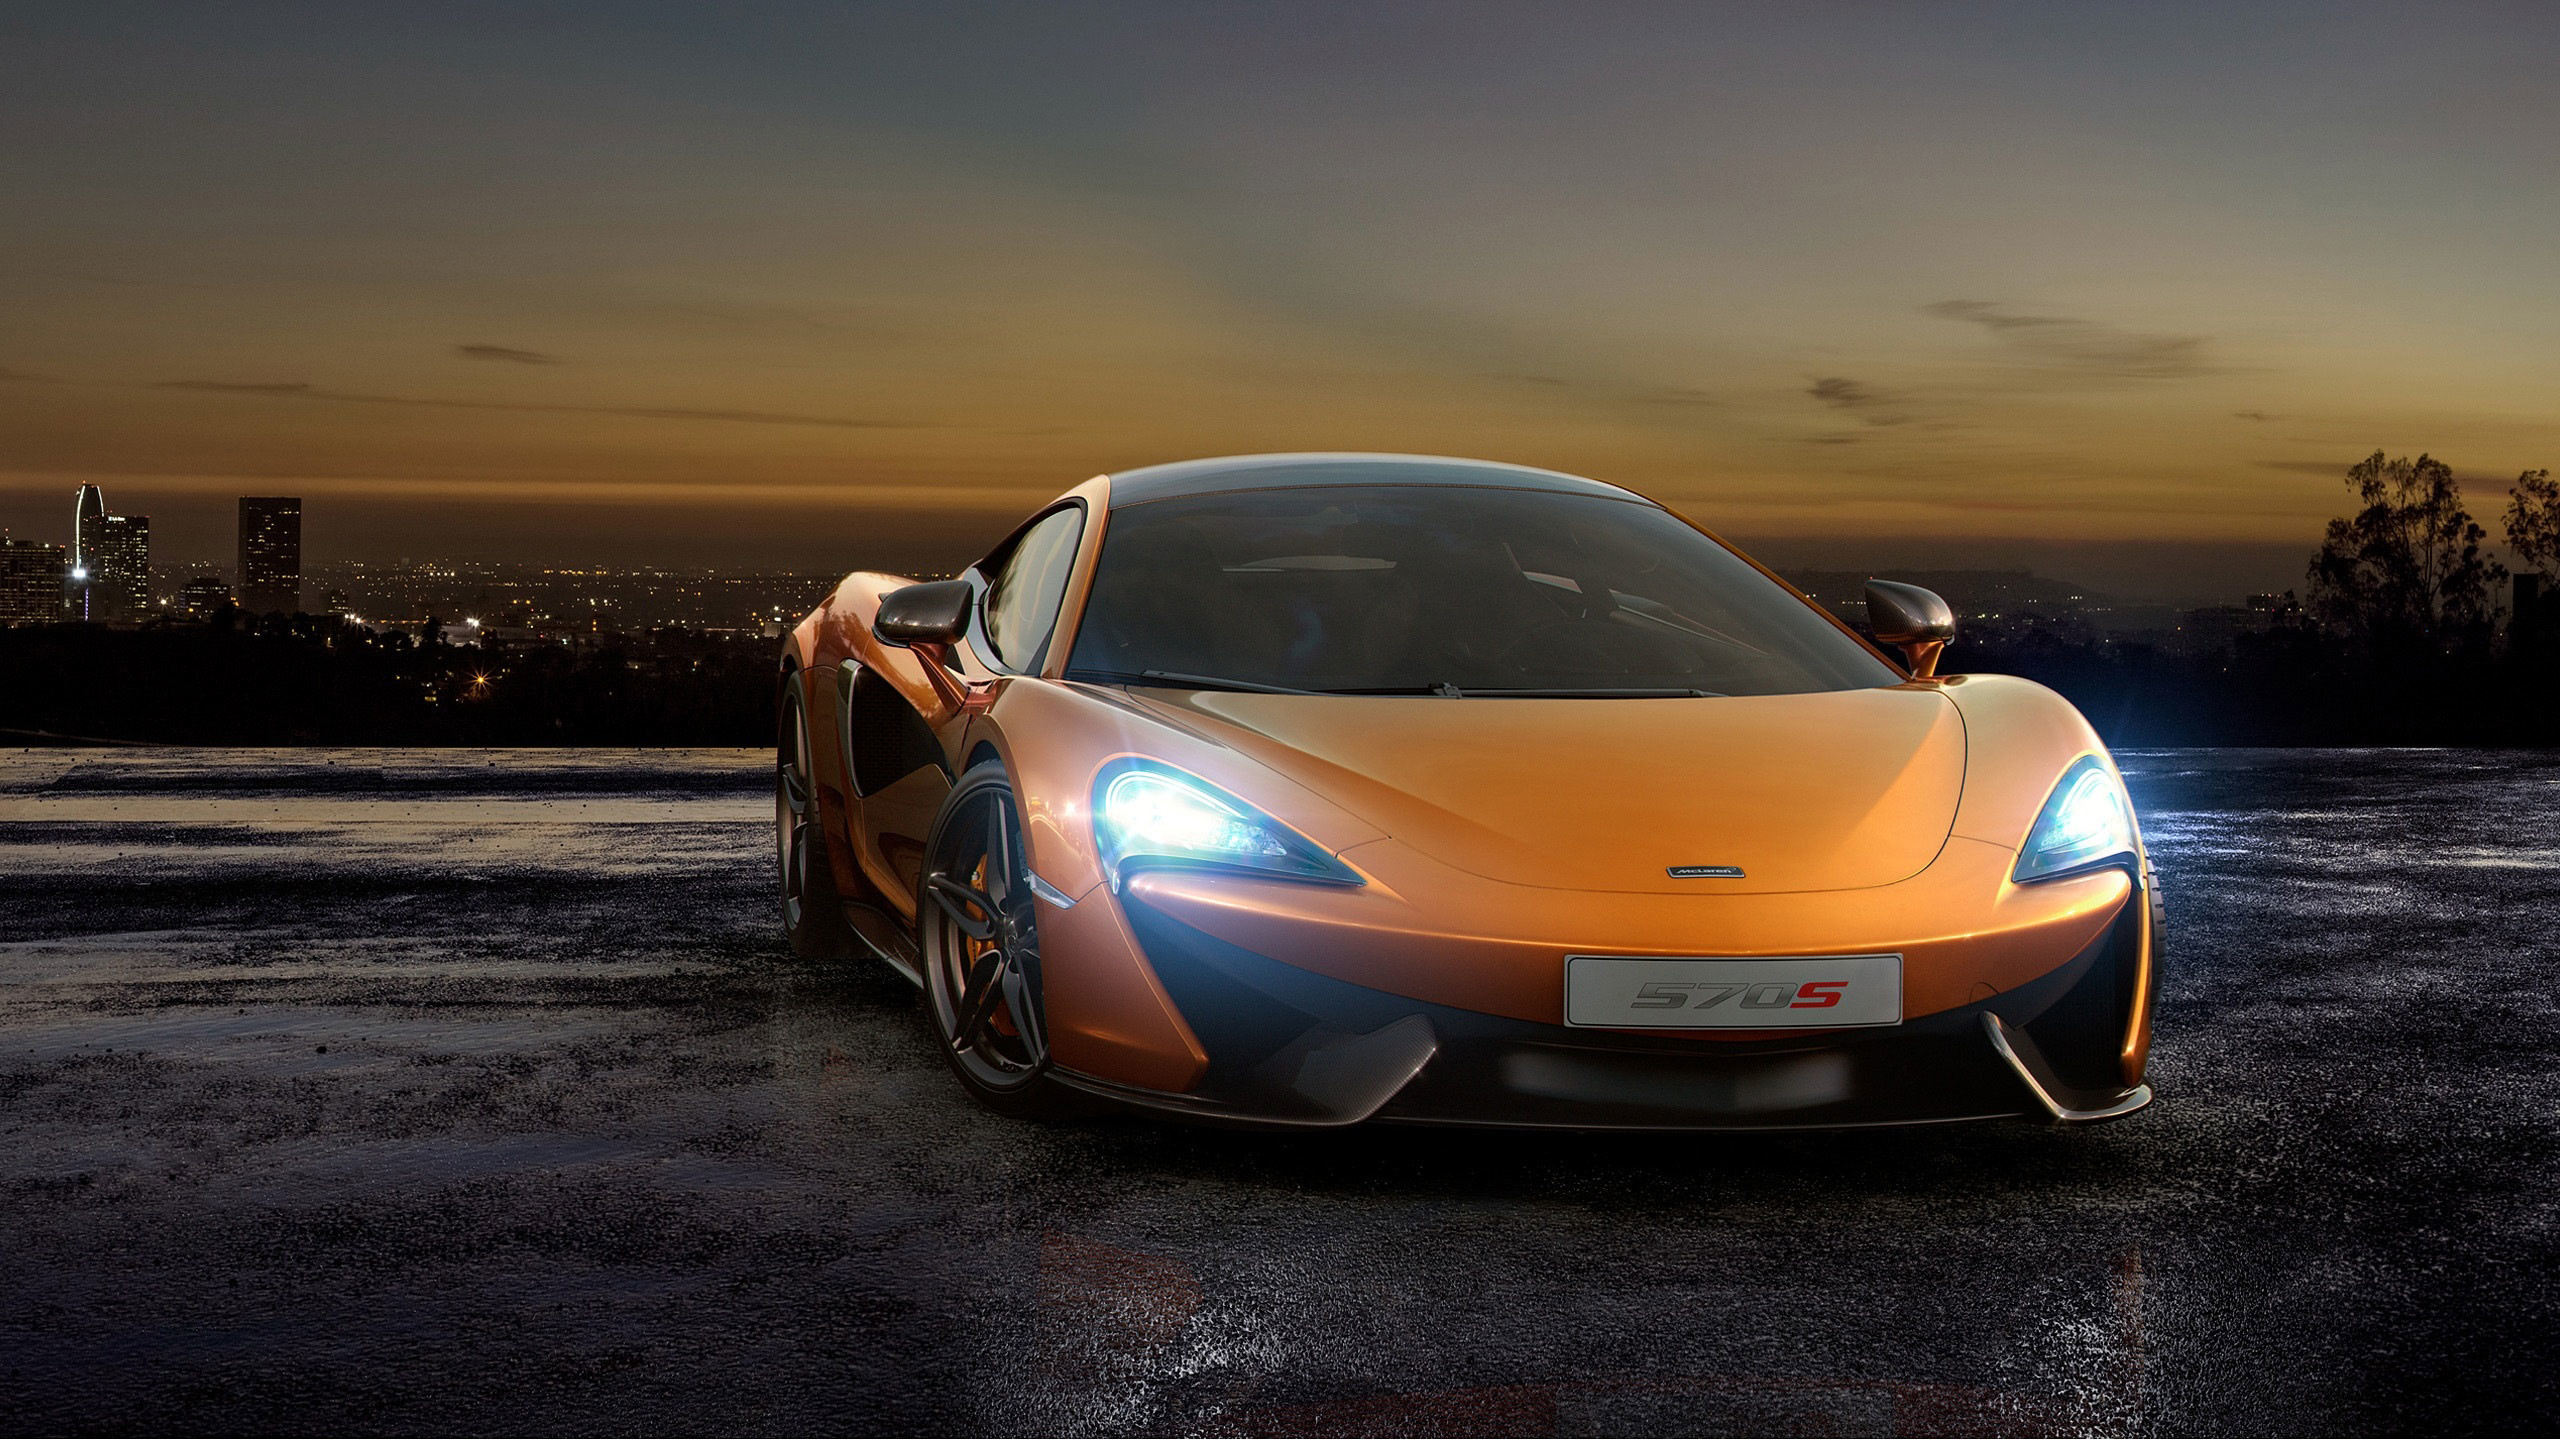 Cool Car Wallpapers Images - Cool car photos